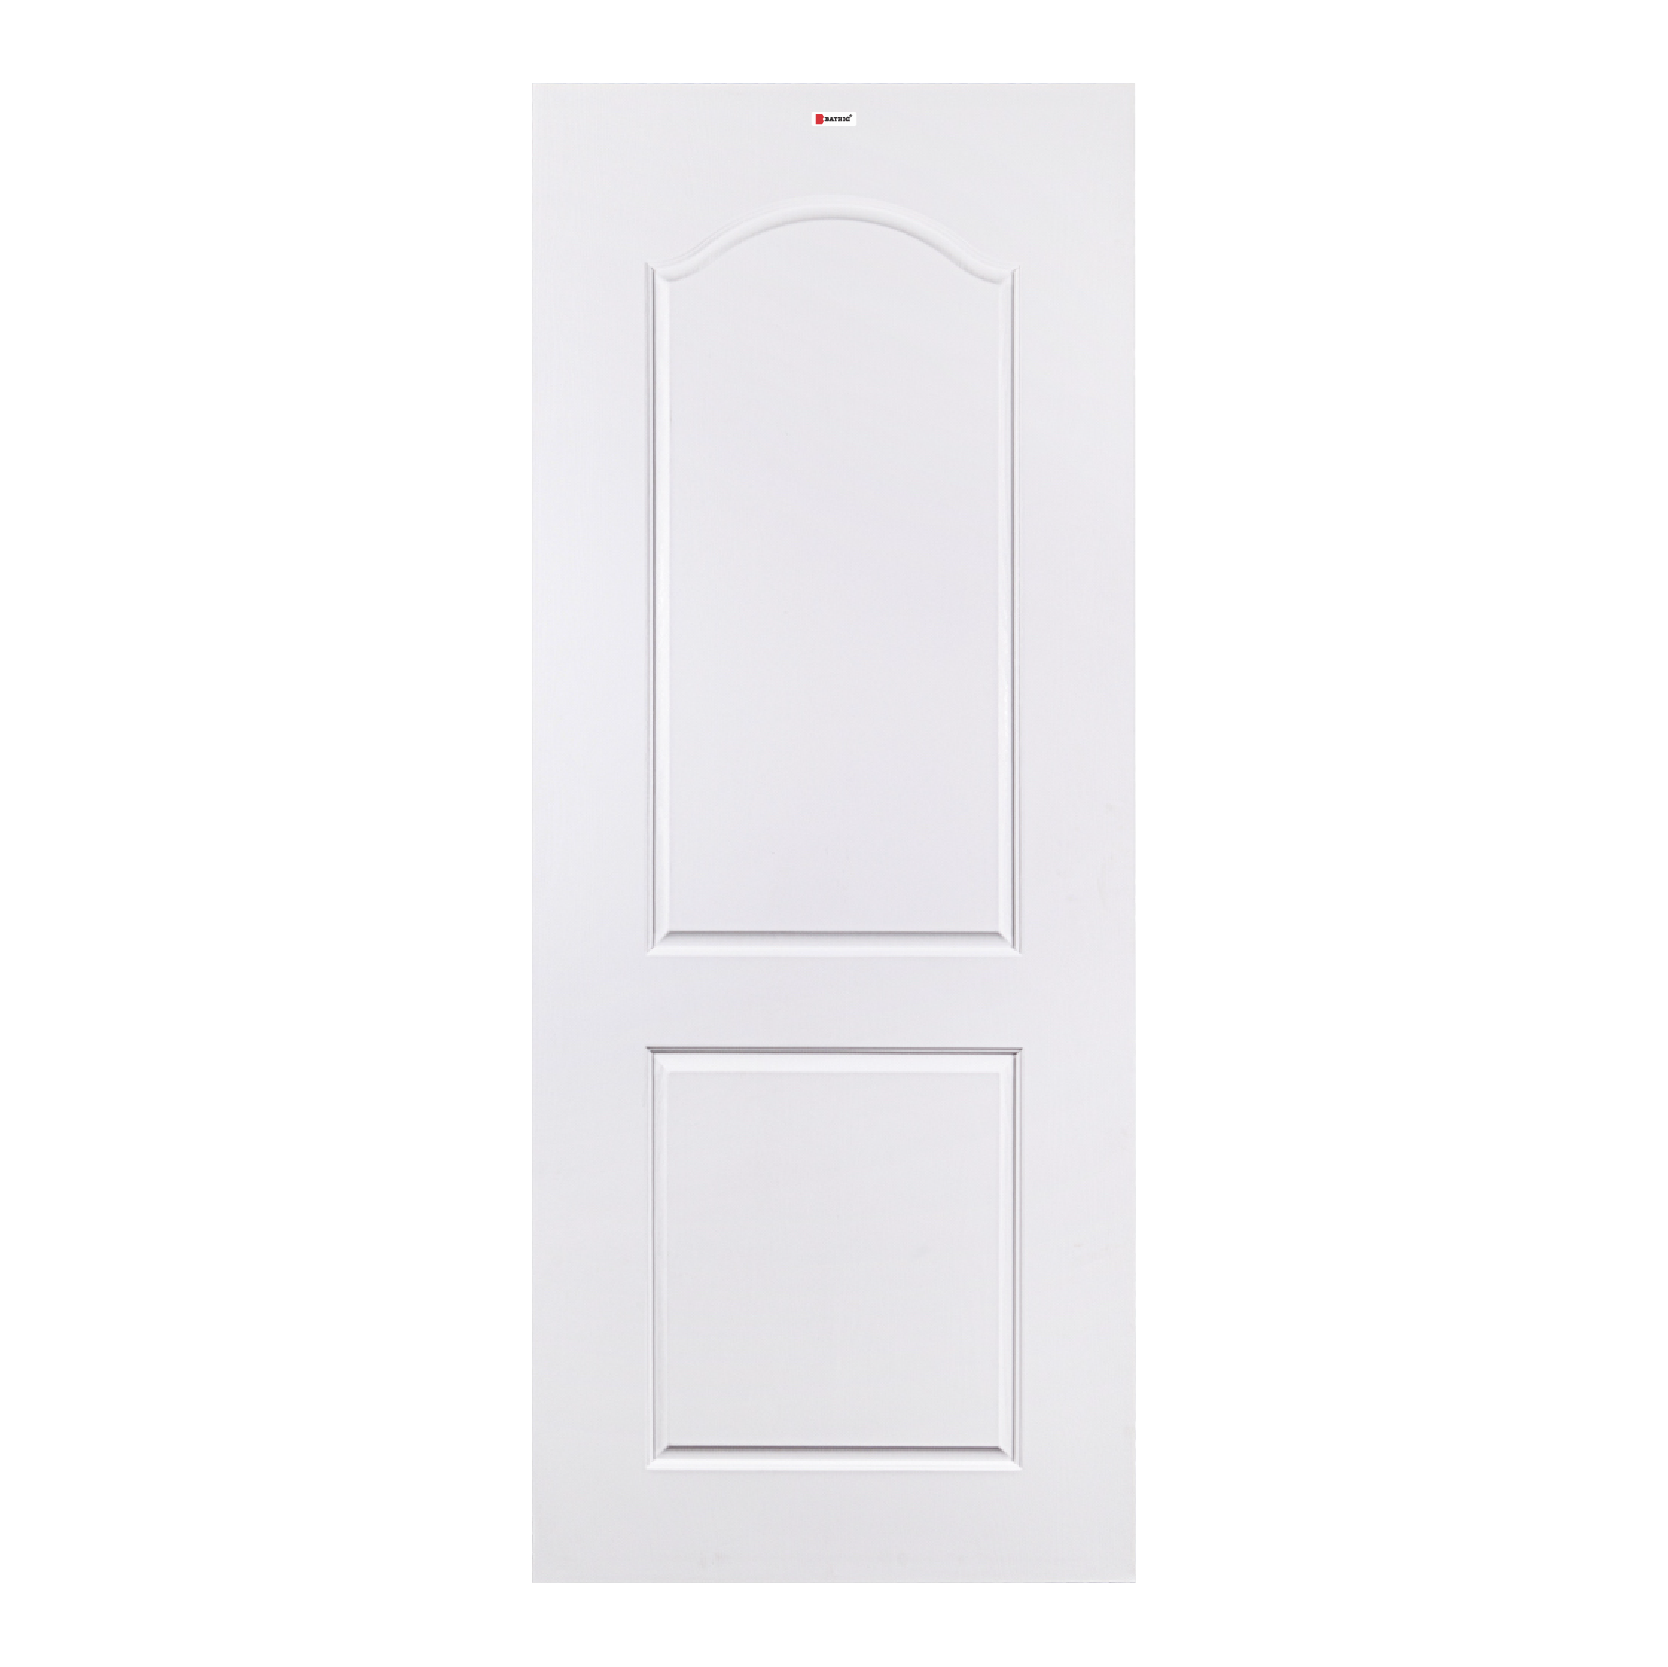 door-upvc-bathic-btu201-white-1